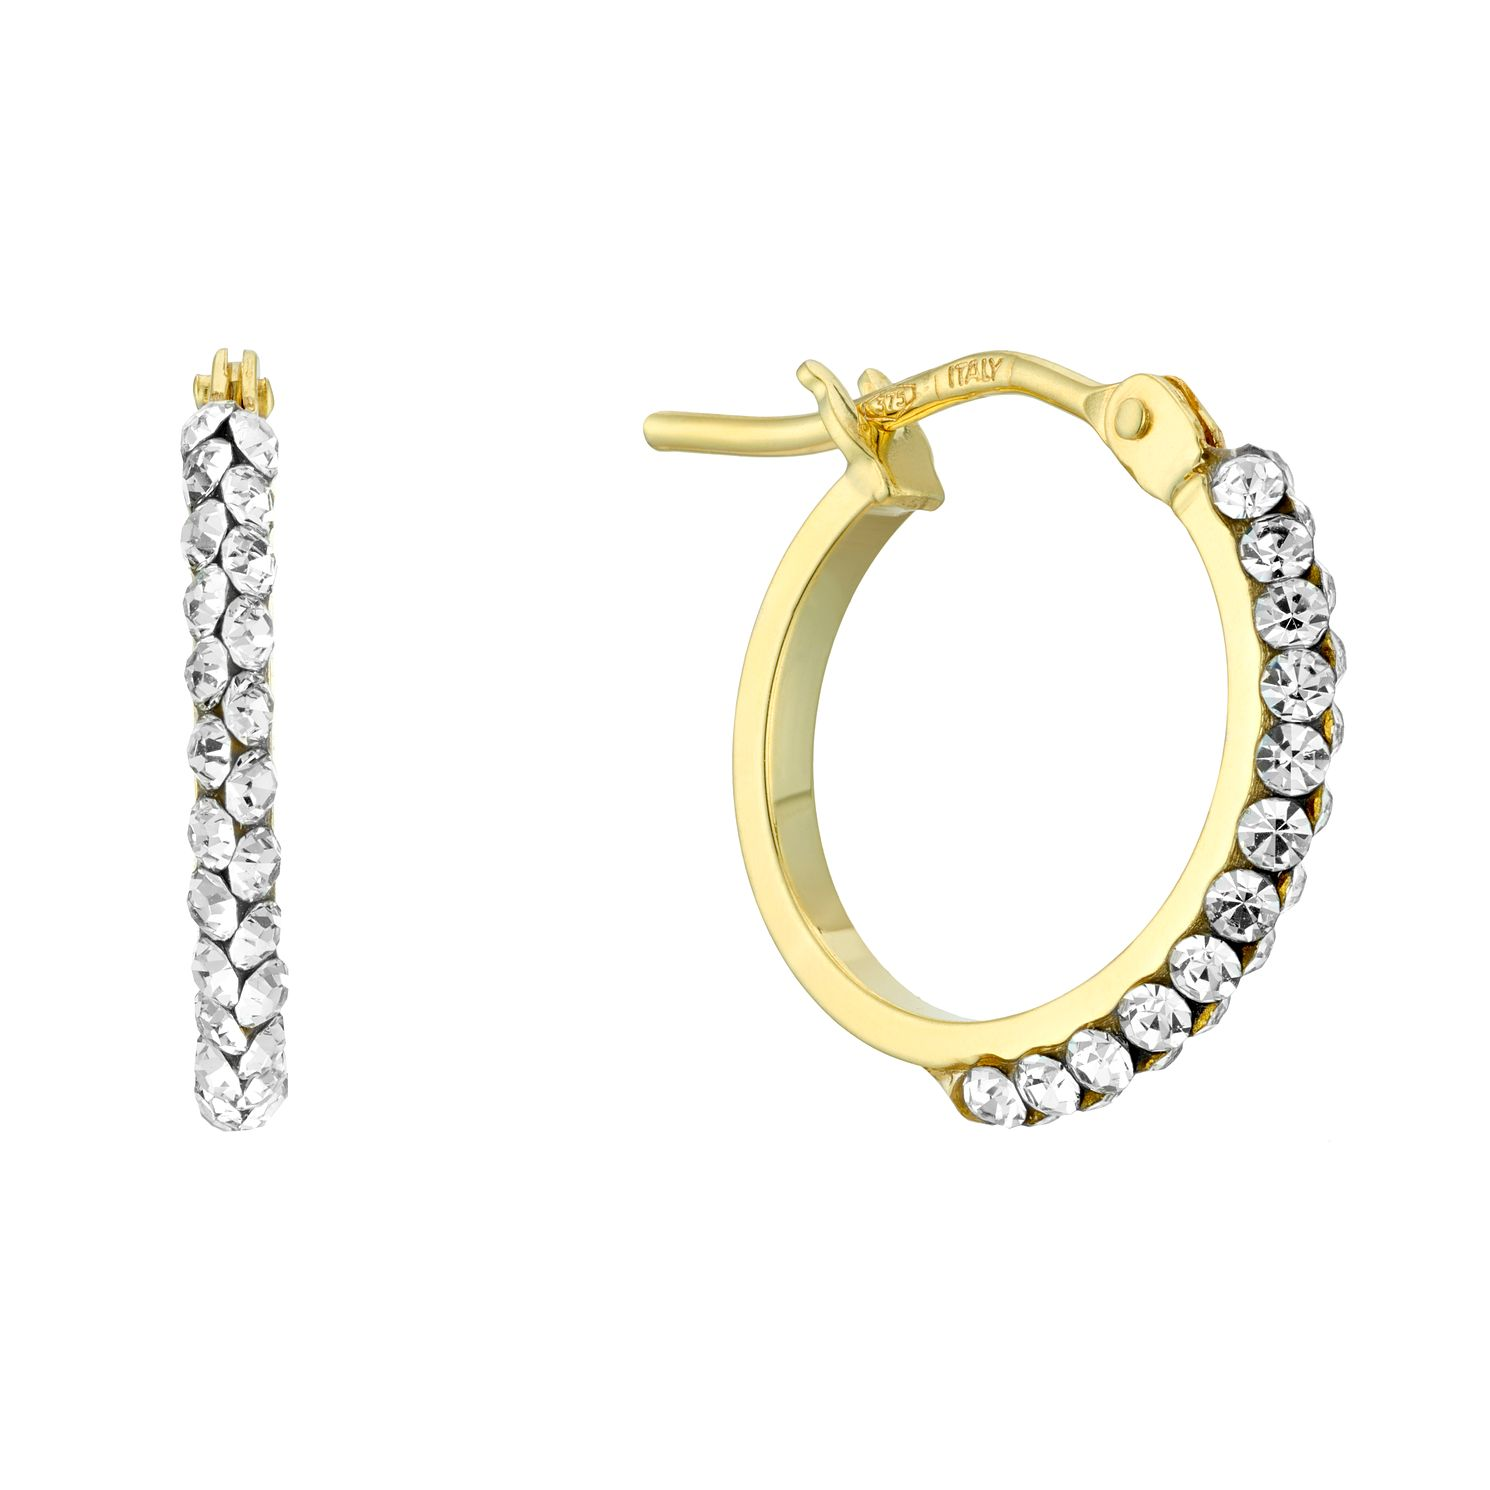 9ct Yellow Gold Crystal 10mm Hoop Earrings - Product number 4667050